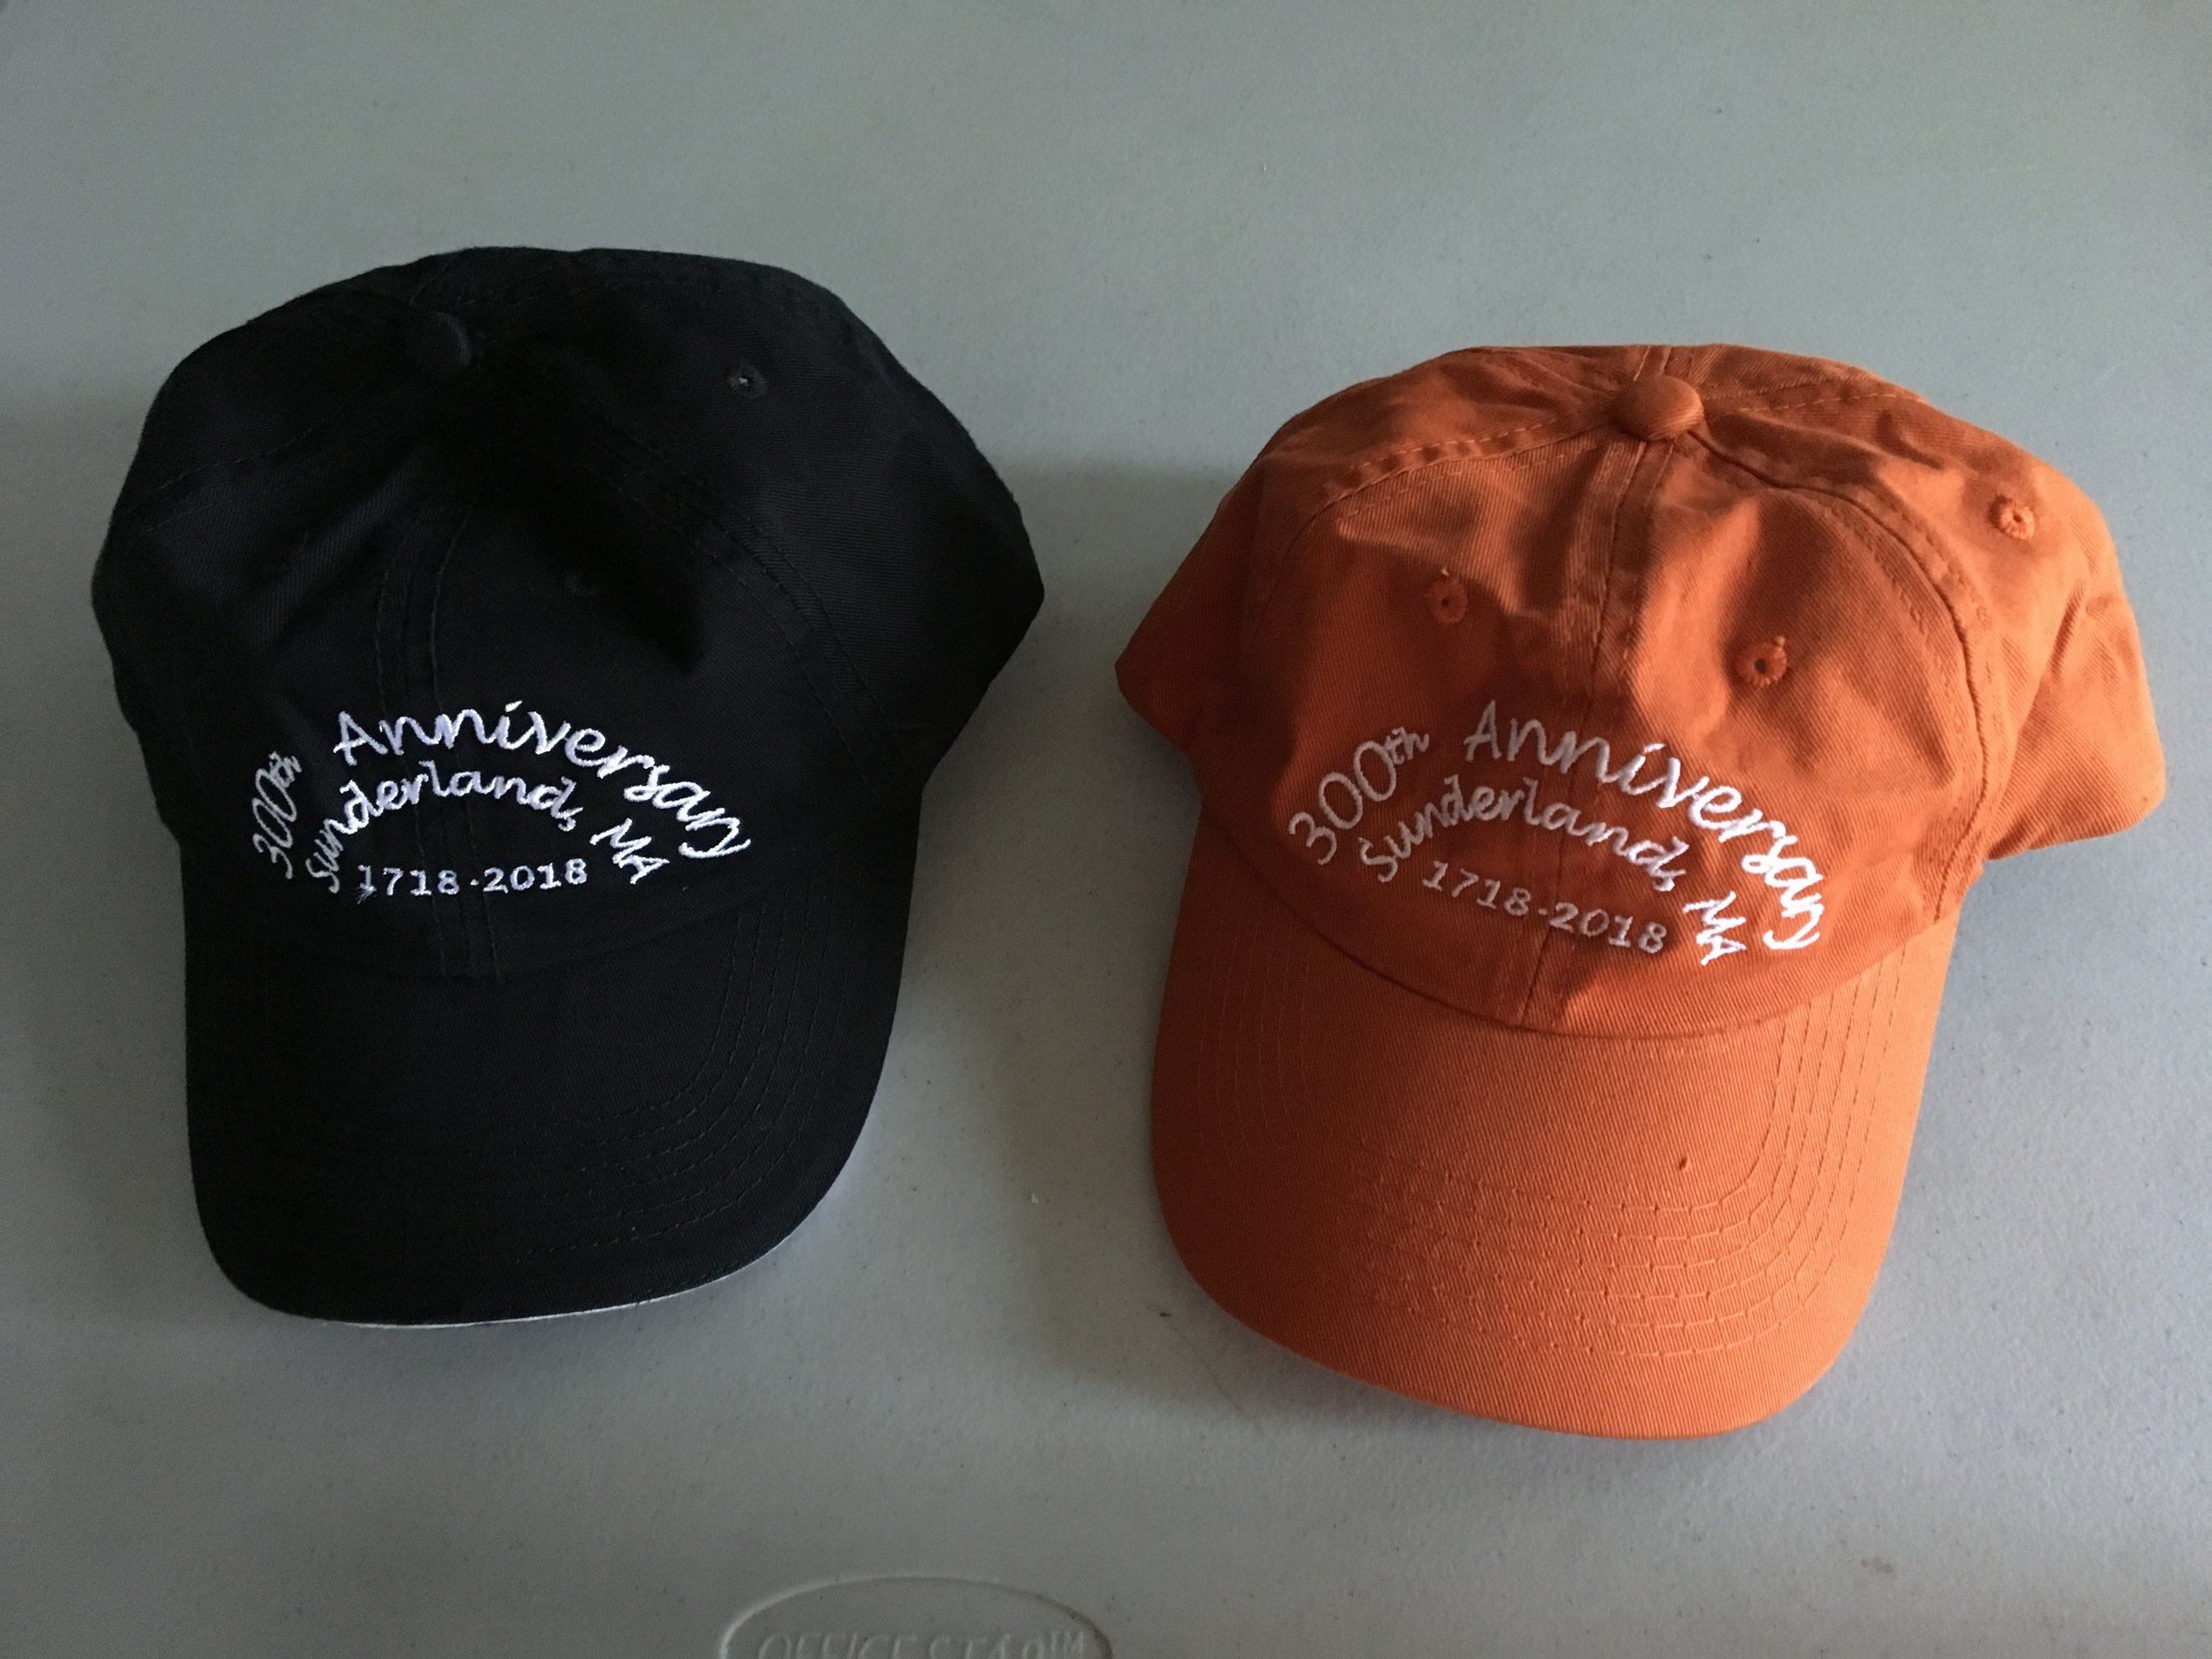 Hats are available for $15.00